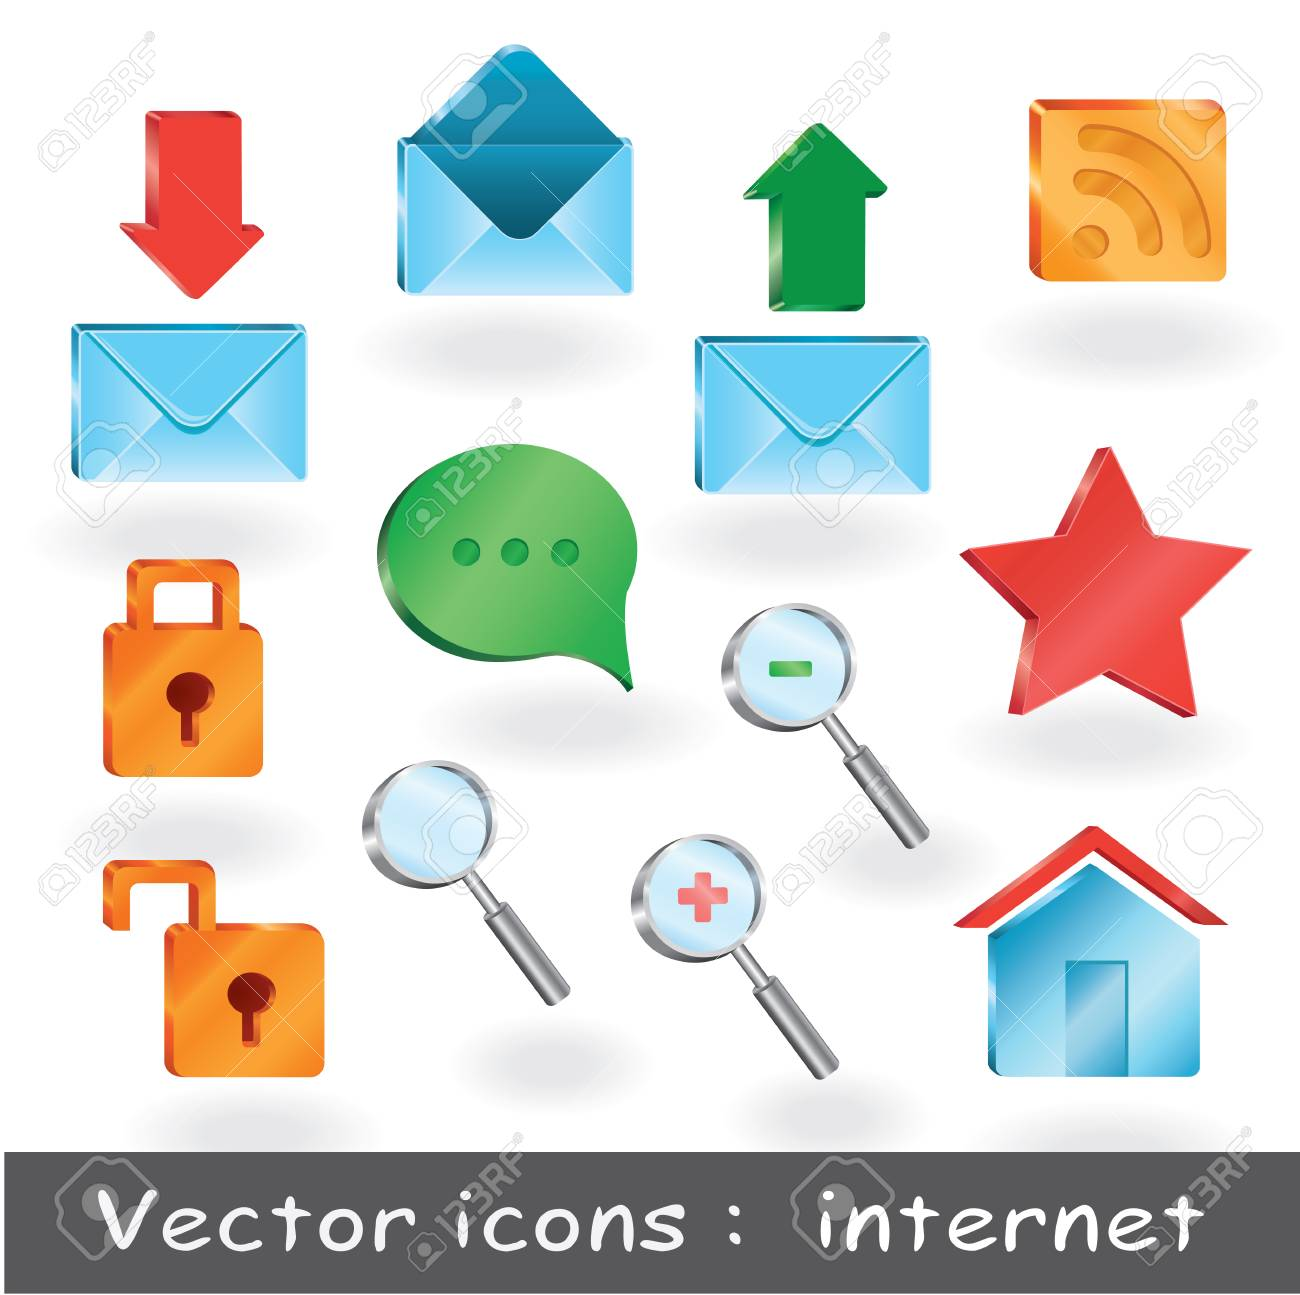 12 pro icons for web presentation or for web sites royalty free